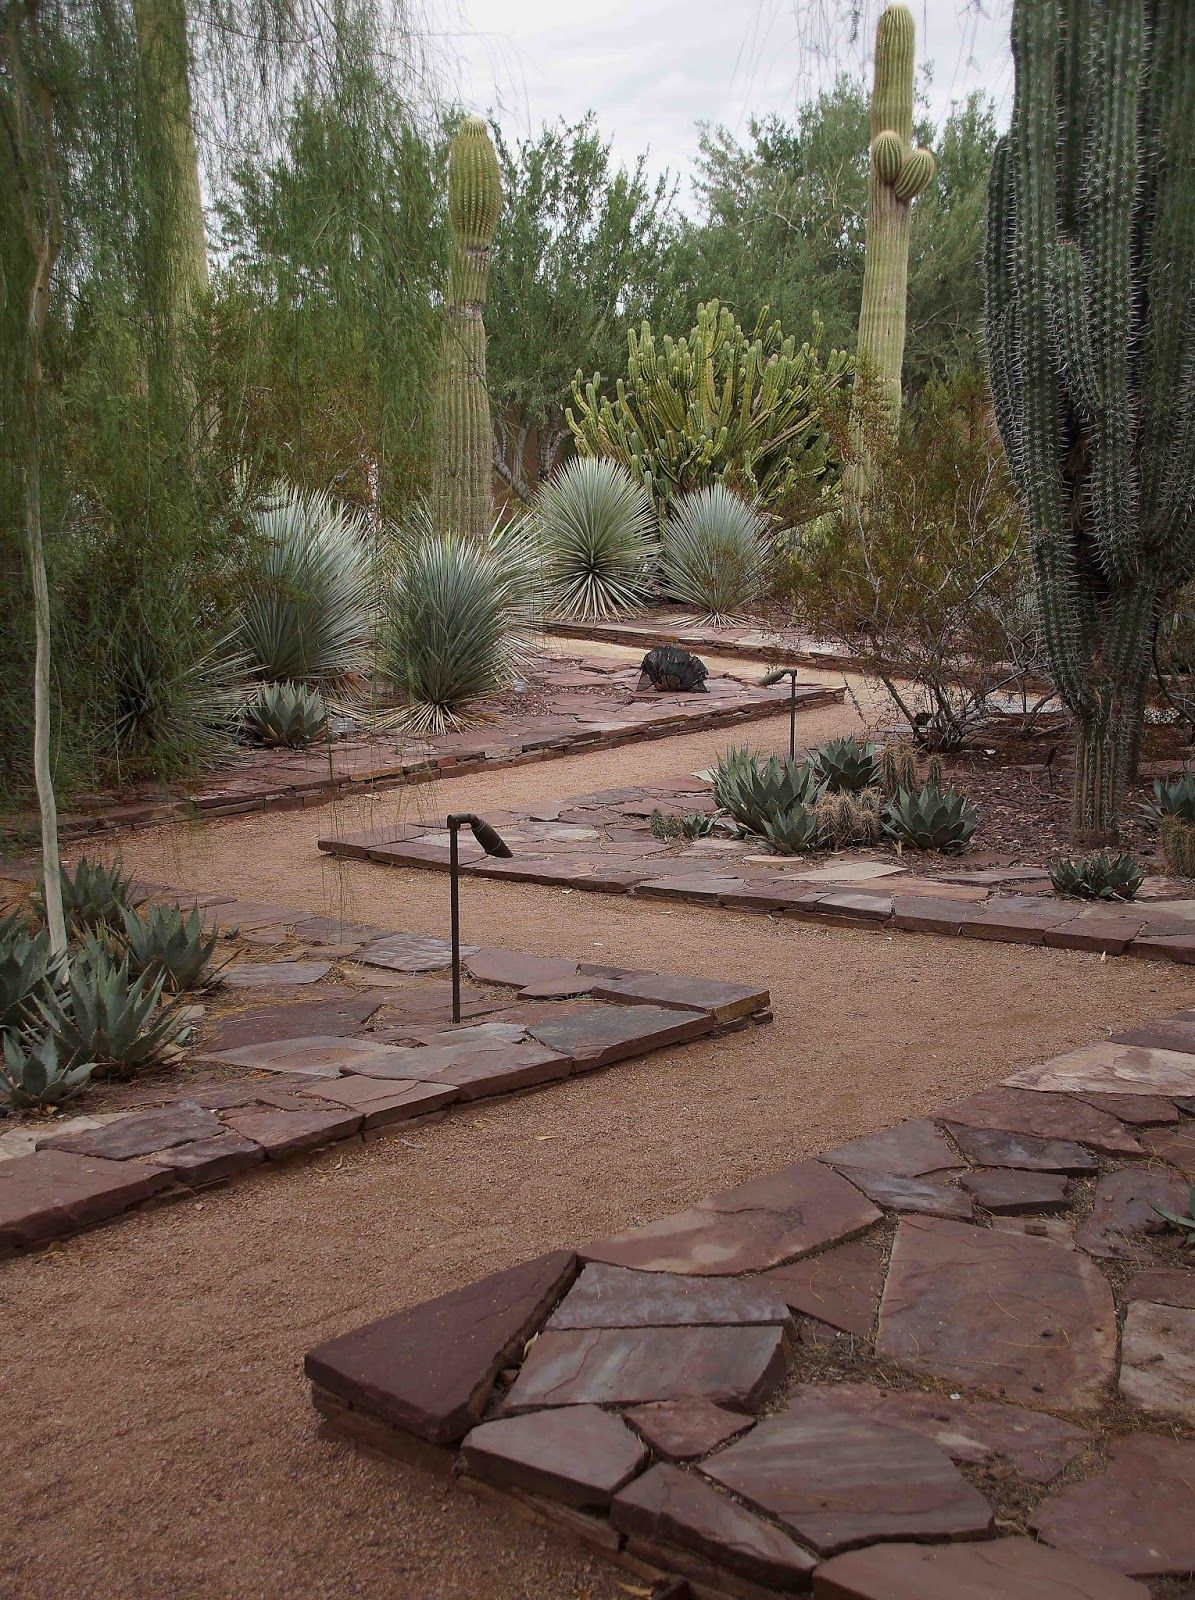 Piece of Eden: Four Things About The Phoenix Desert Botanical Garden #botanicgarden